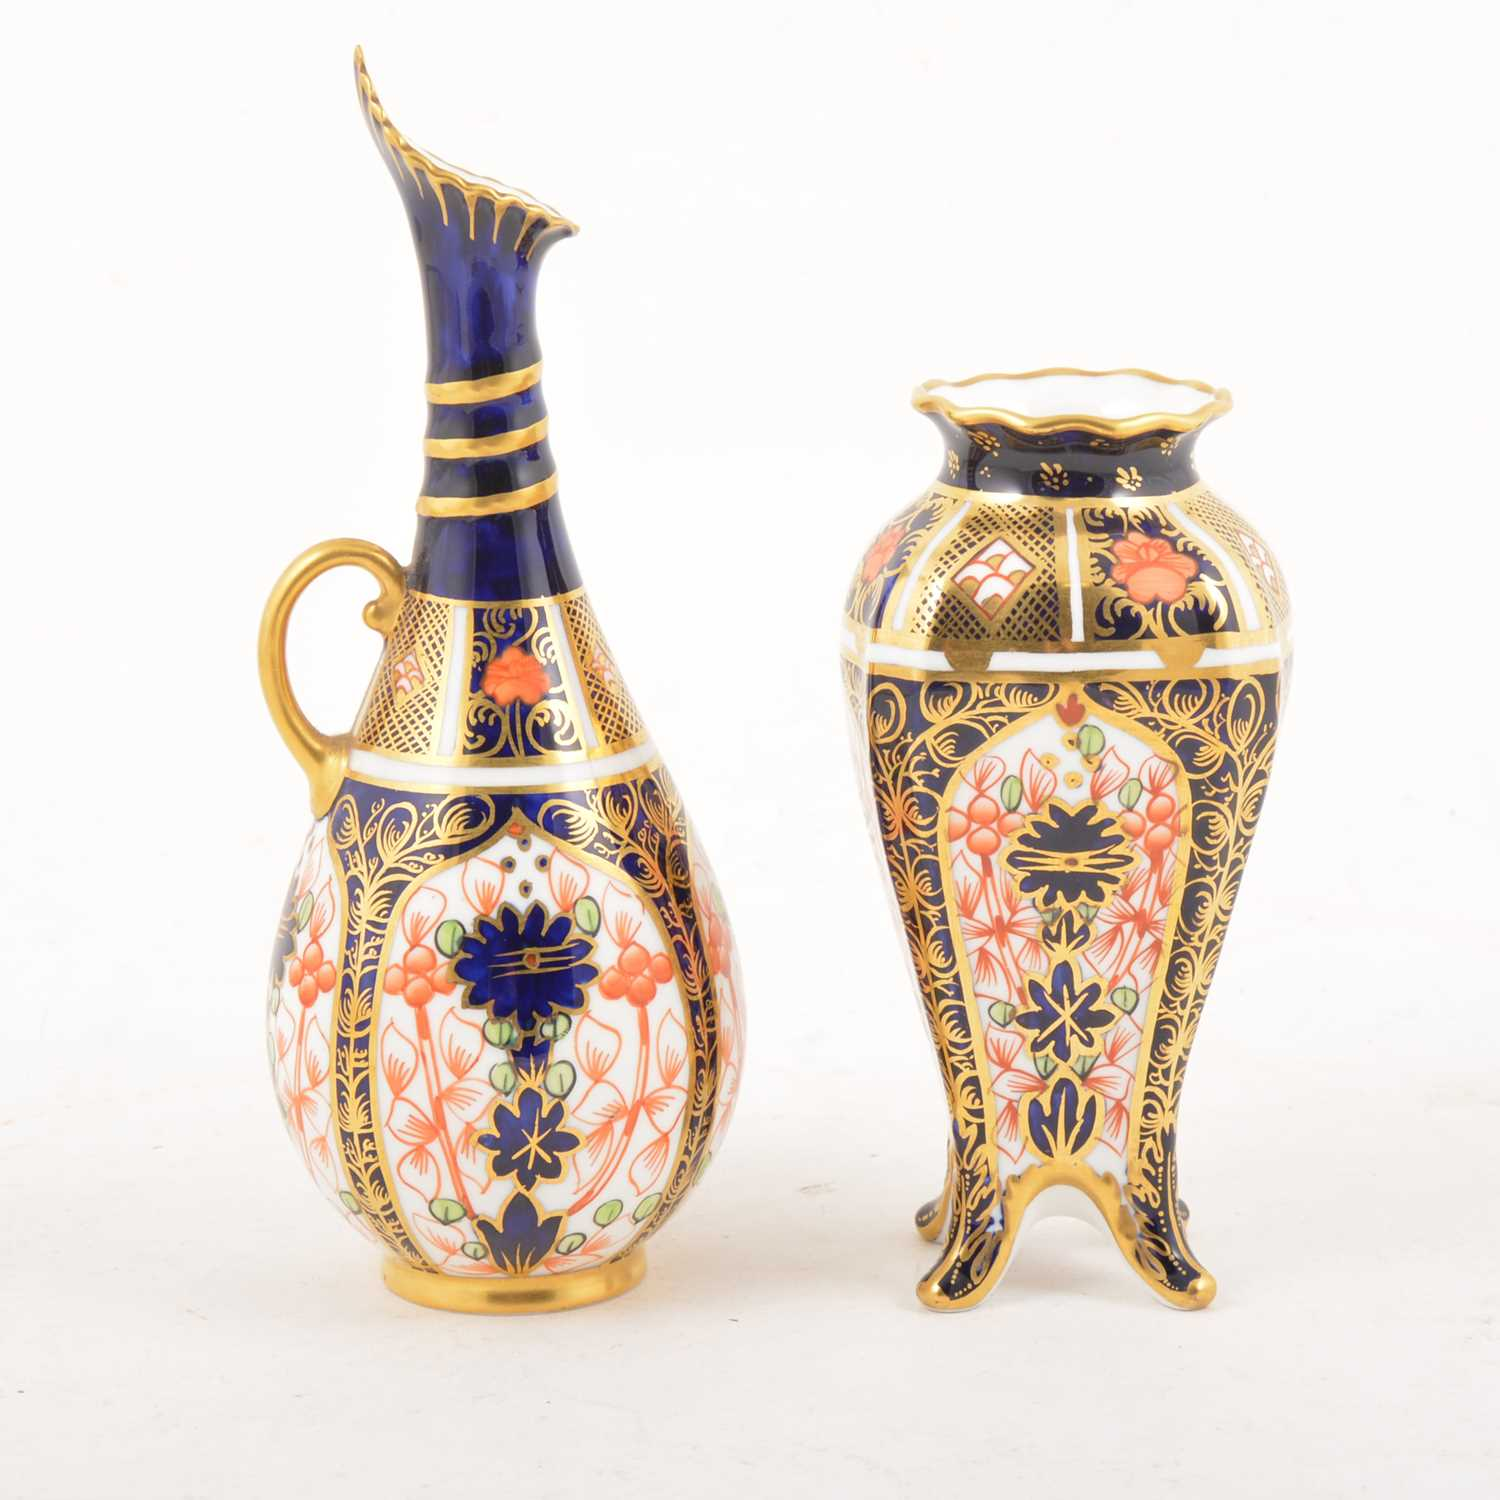 Lot 5 - A Royal Crown Derby Imari pattern ewer and vase.